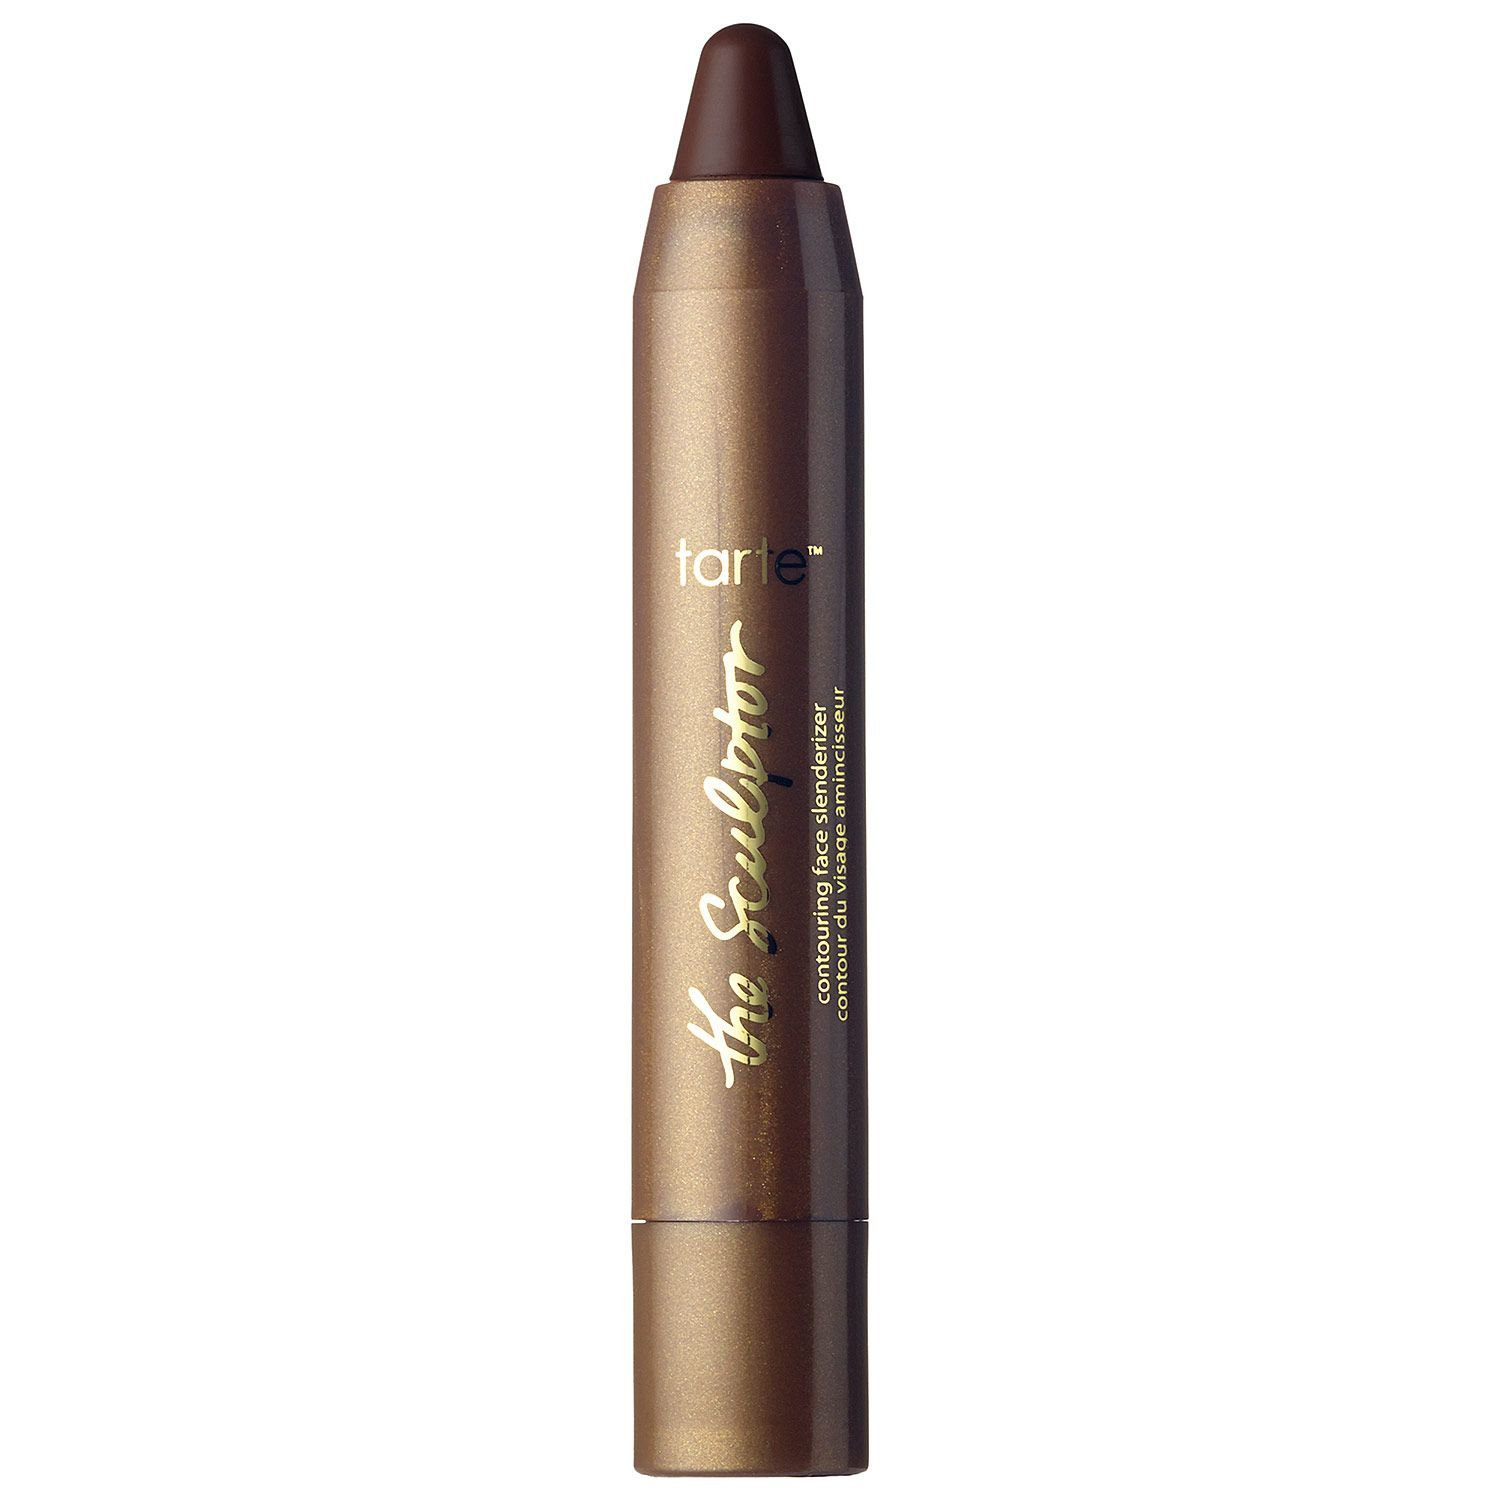 Tarte The Sculptor Contour Stick